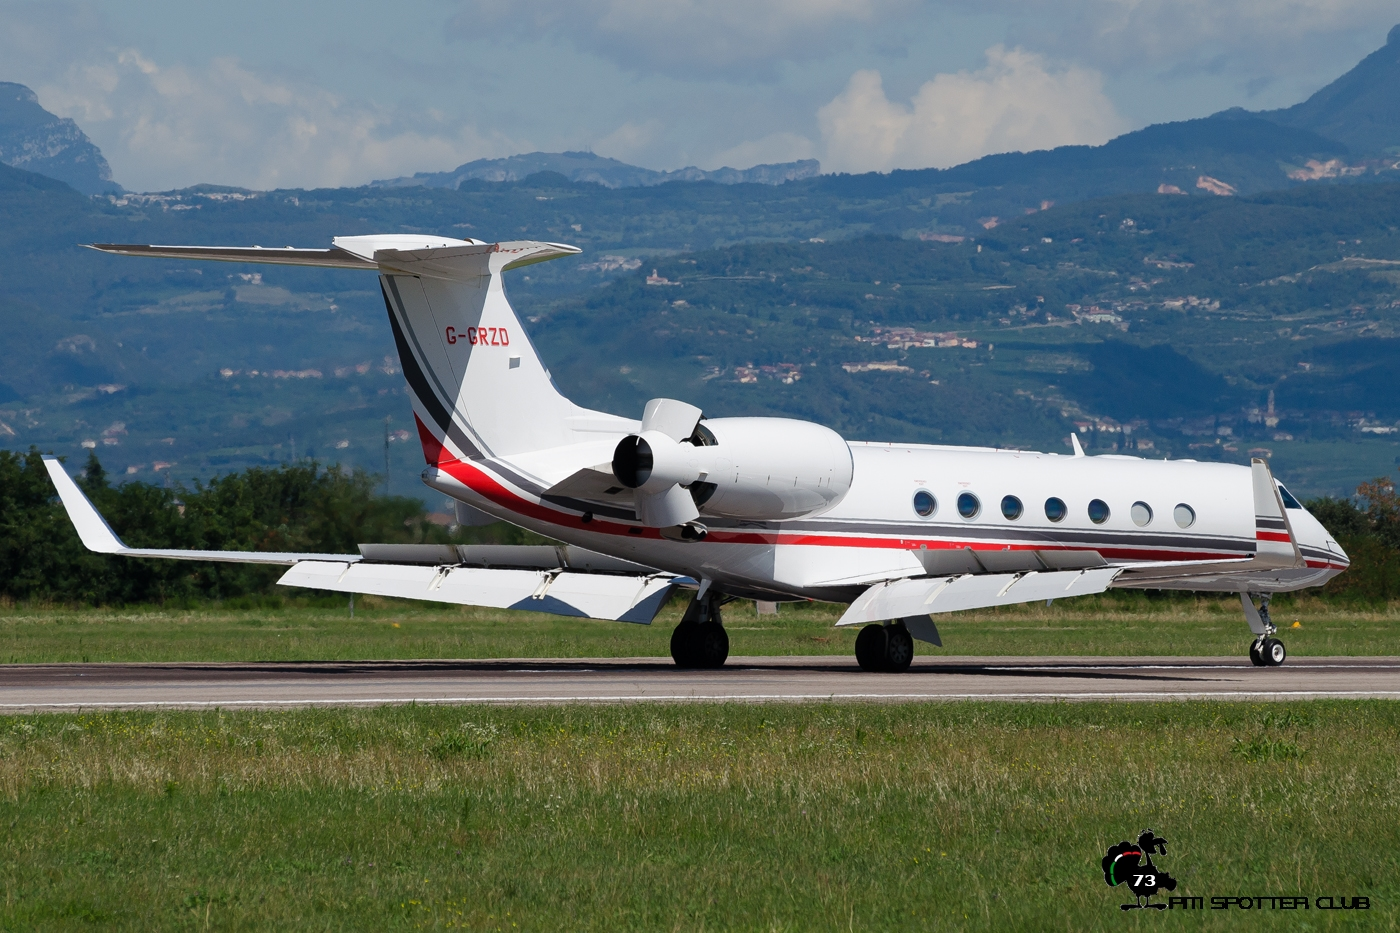 G-GRZD G550 5315 TAG Aviation (UK) Ltd. @ Aeroporto di Verona - 11/08/2016 © Piti Spotter Club Verona